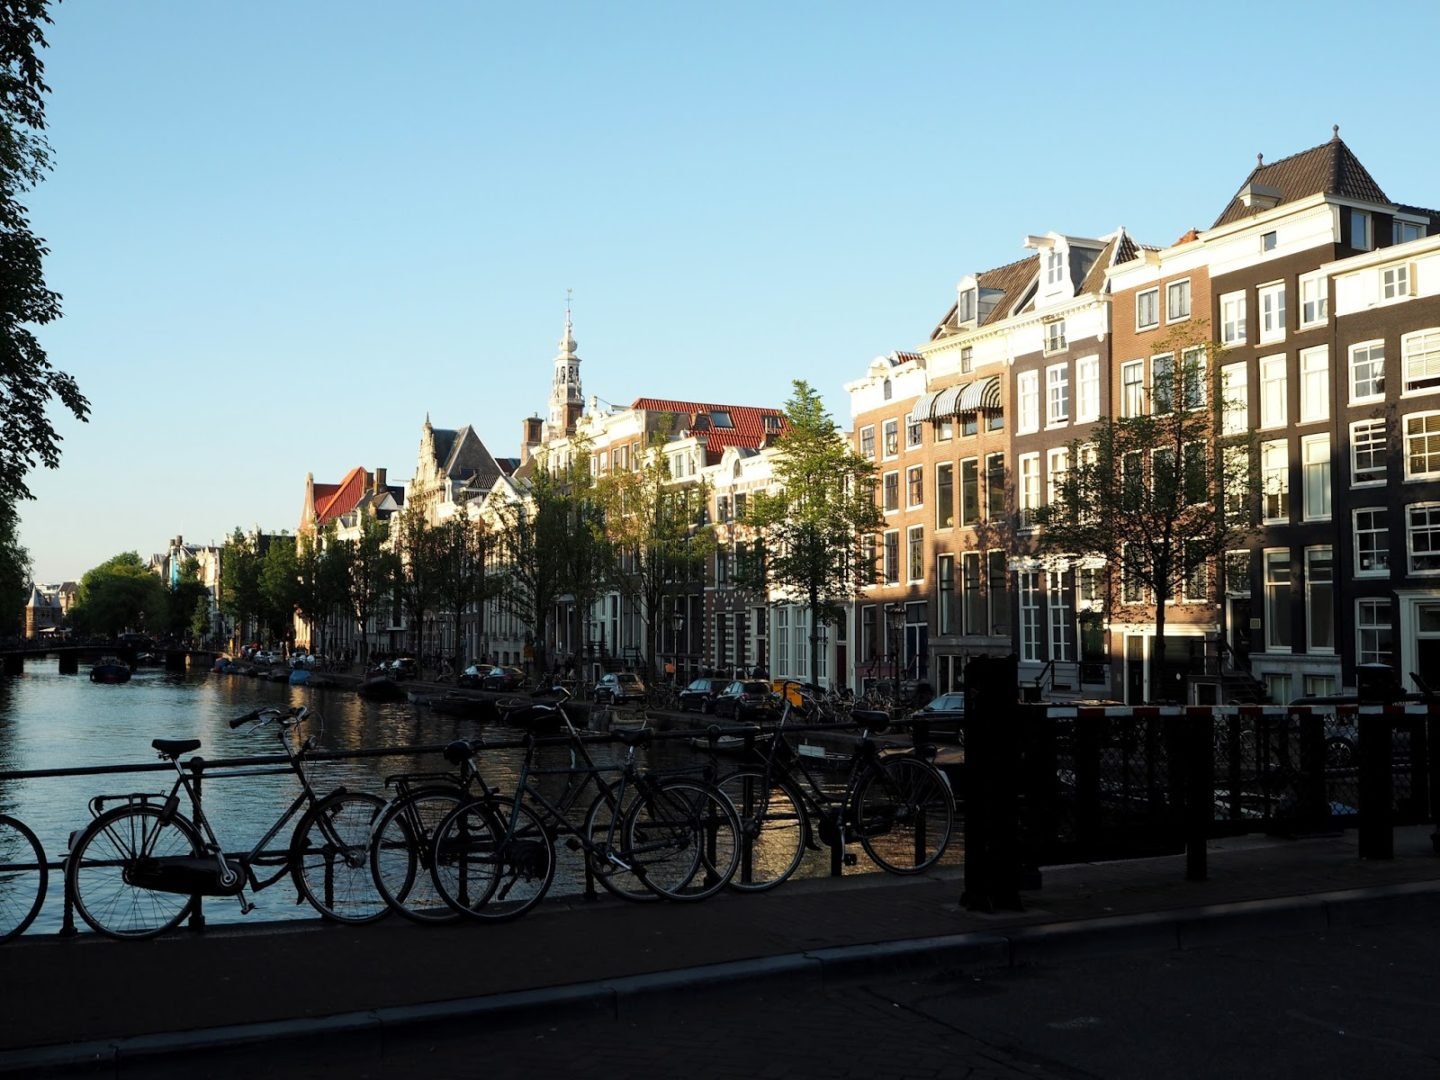 Amsterdam diary: Day 1